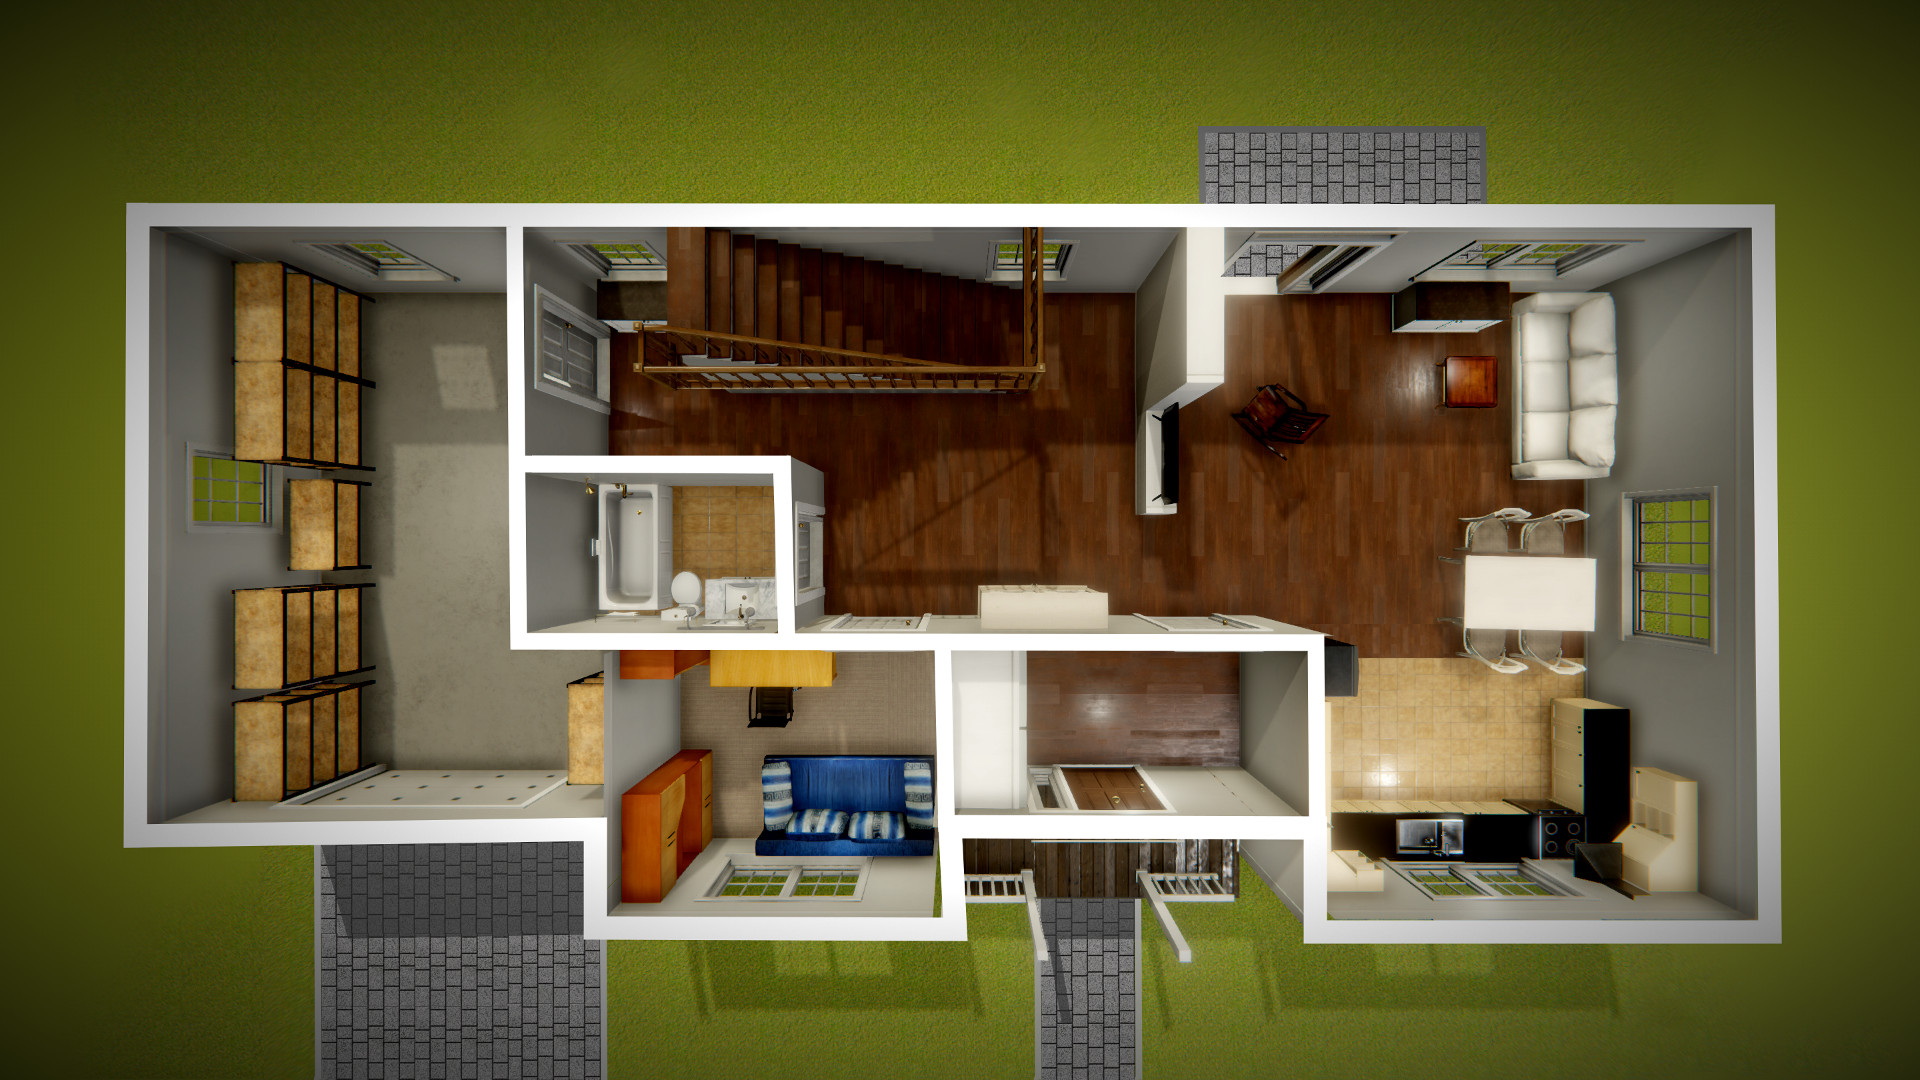 House Flipper House Repair And Sell Simulator The Escapist